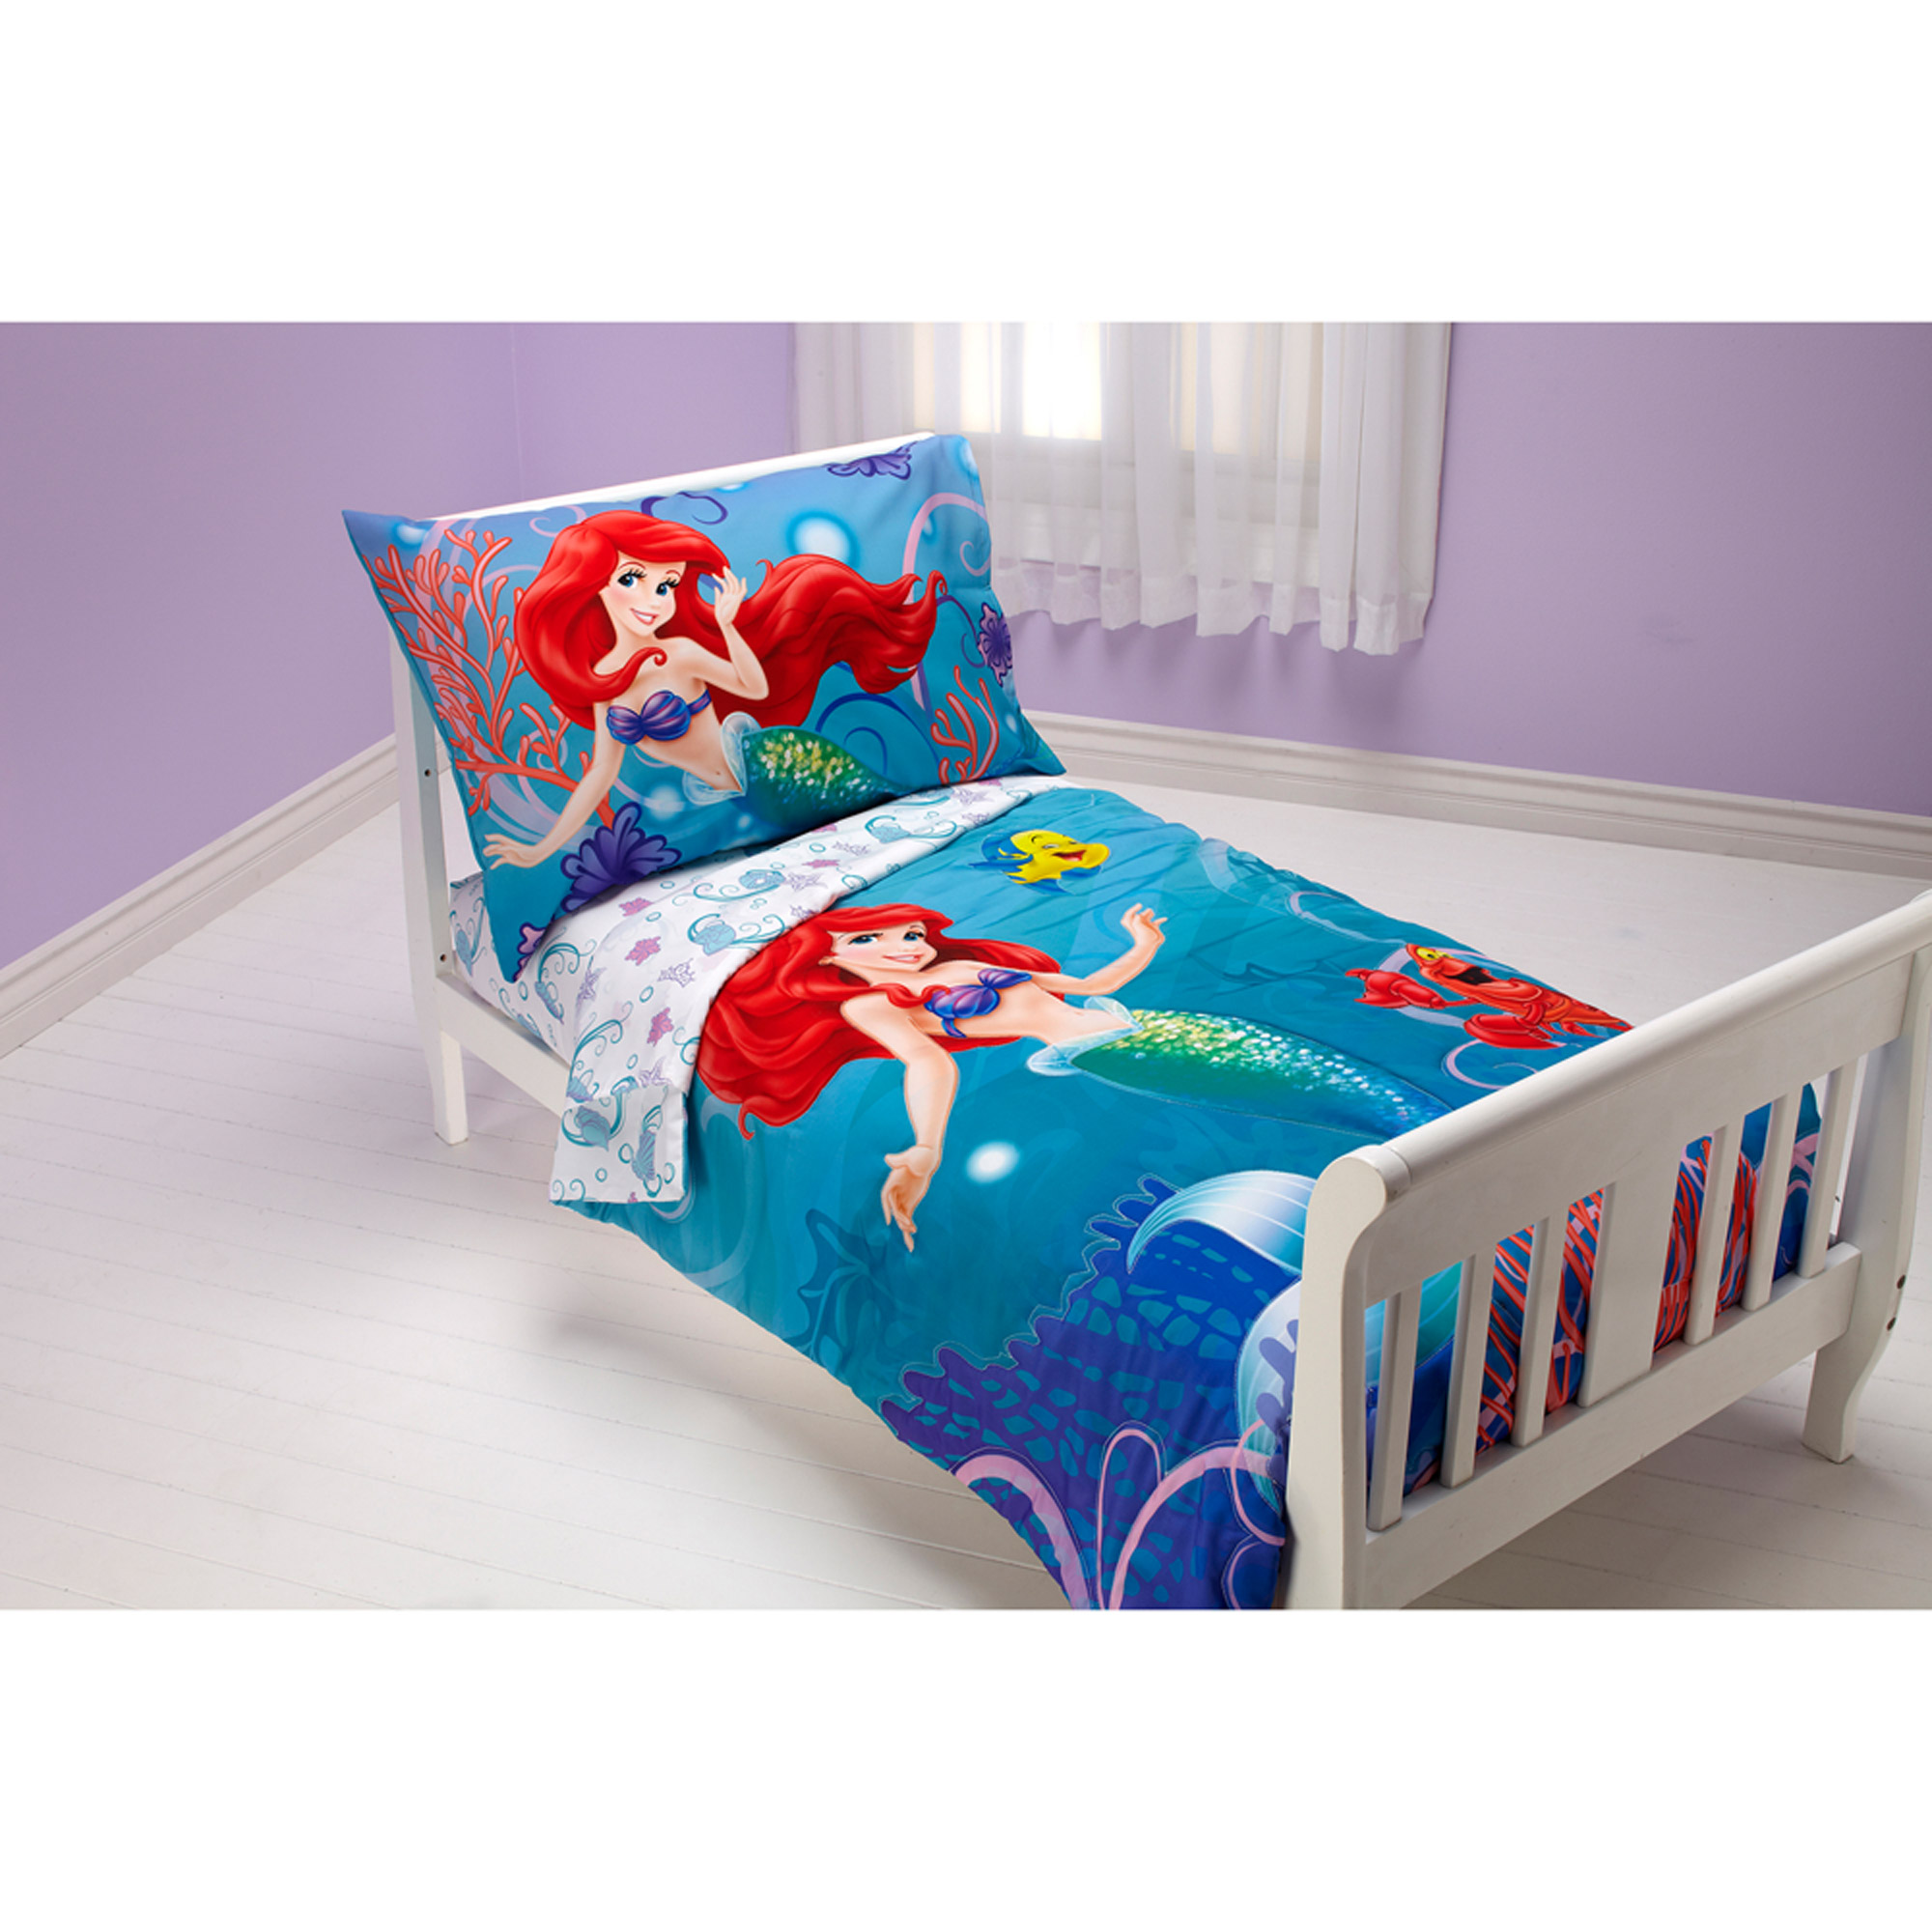 Disney   Little Mermaid  Ocean Princess  4pc Toddler Bedding Set    Walmart com. Disney   Little Mermaid  Ocean Princess  4pc Toddler Bedding Set